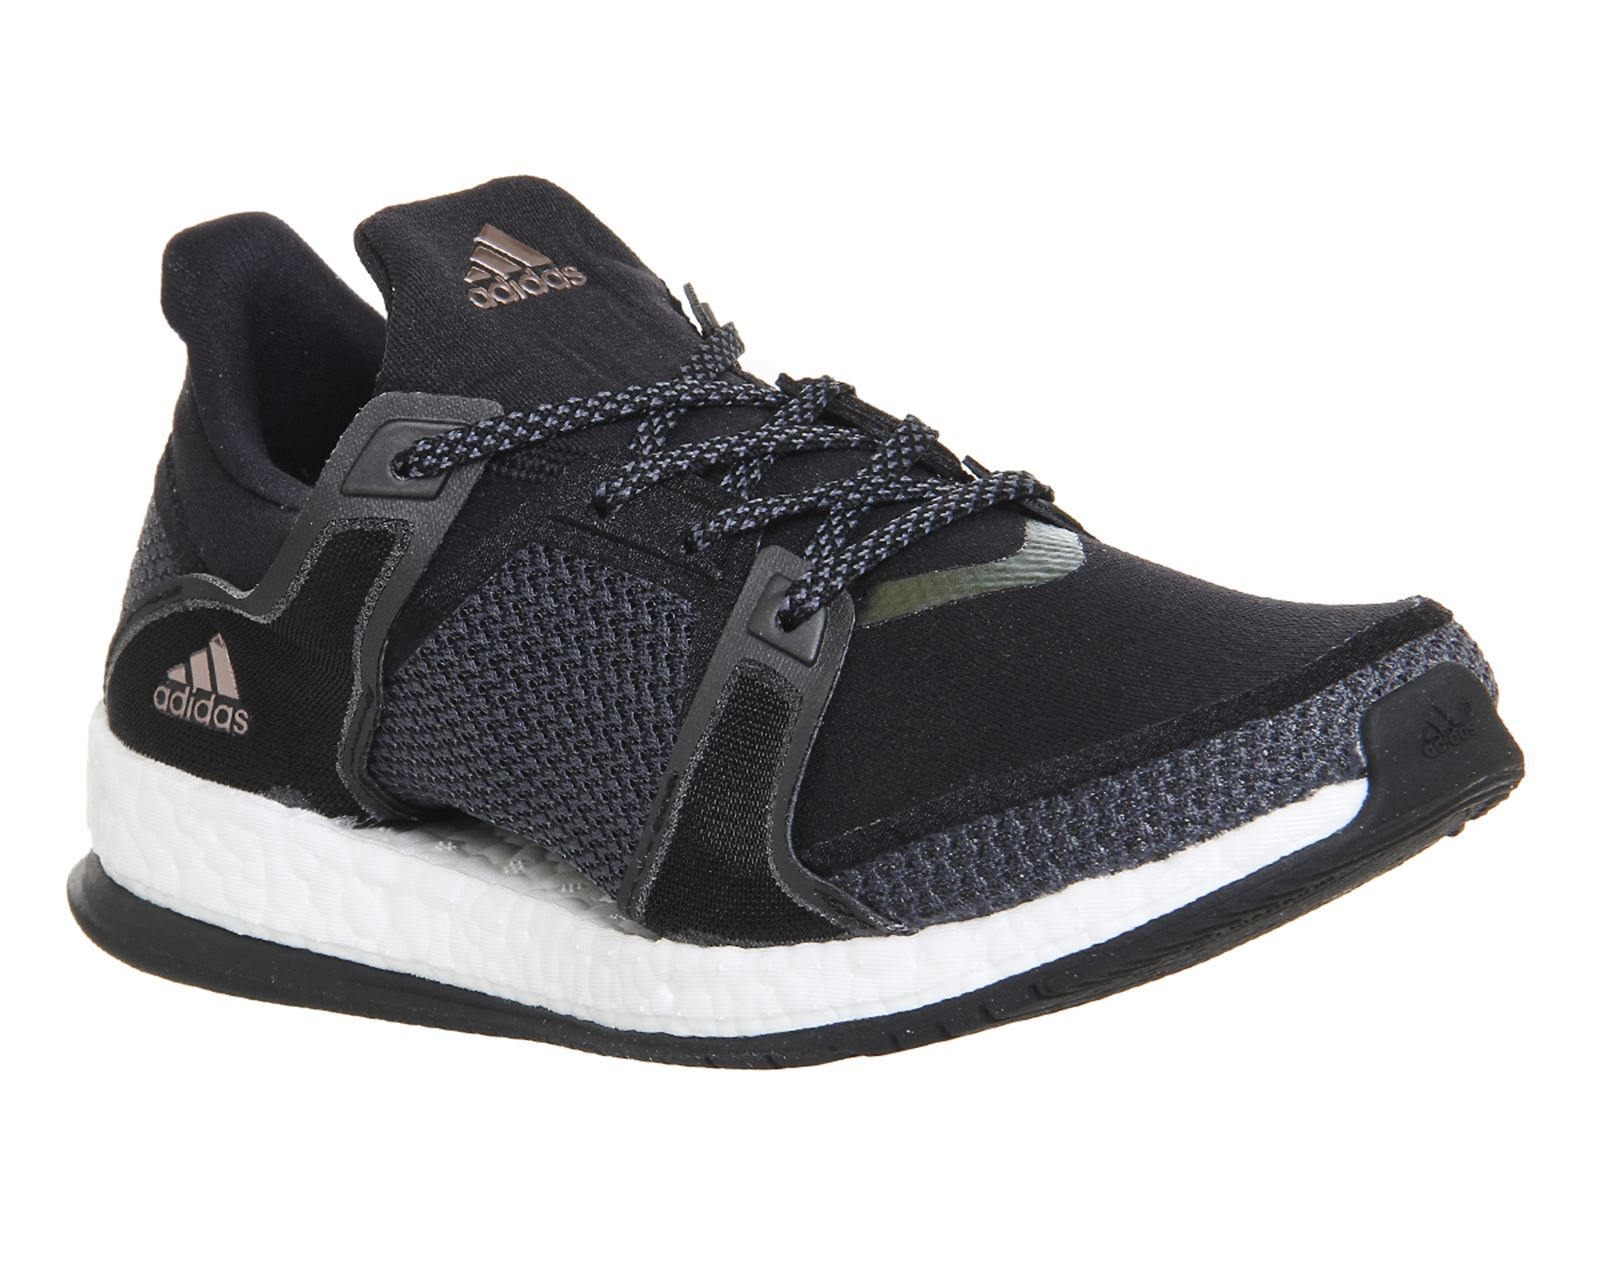 8b655c81b3f6 ... adidas Pure Boost X TR Training Shoes Womens Gym Fitness Trainers  Sneakers ...